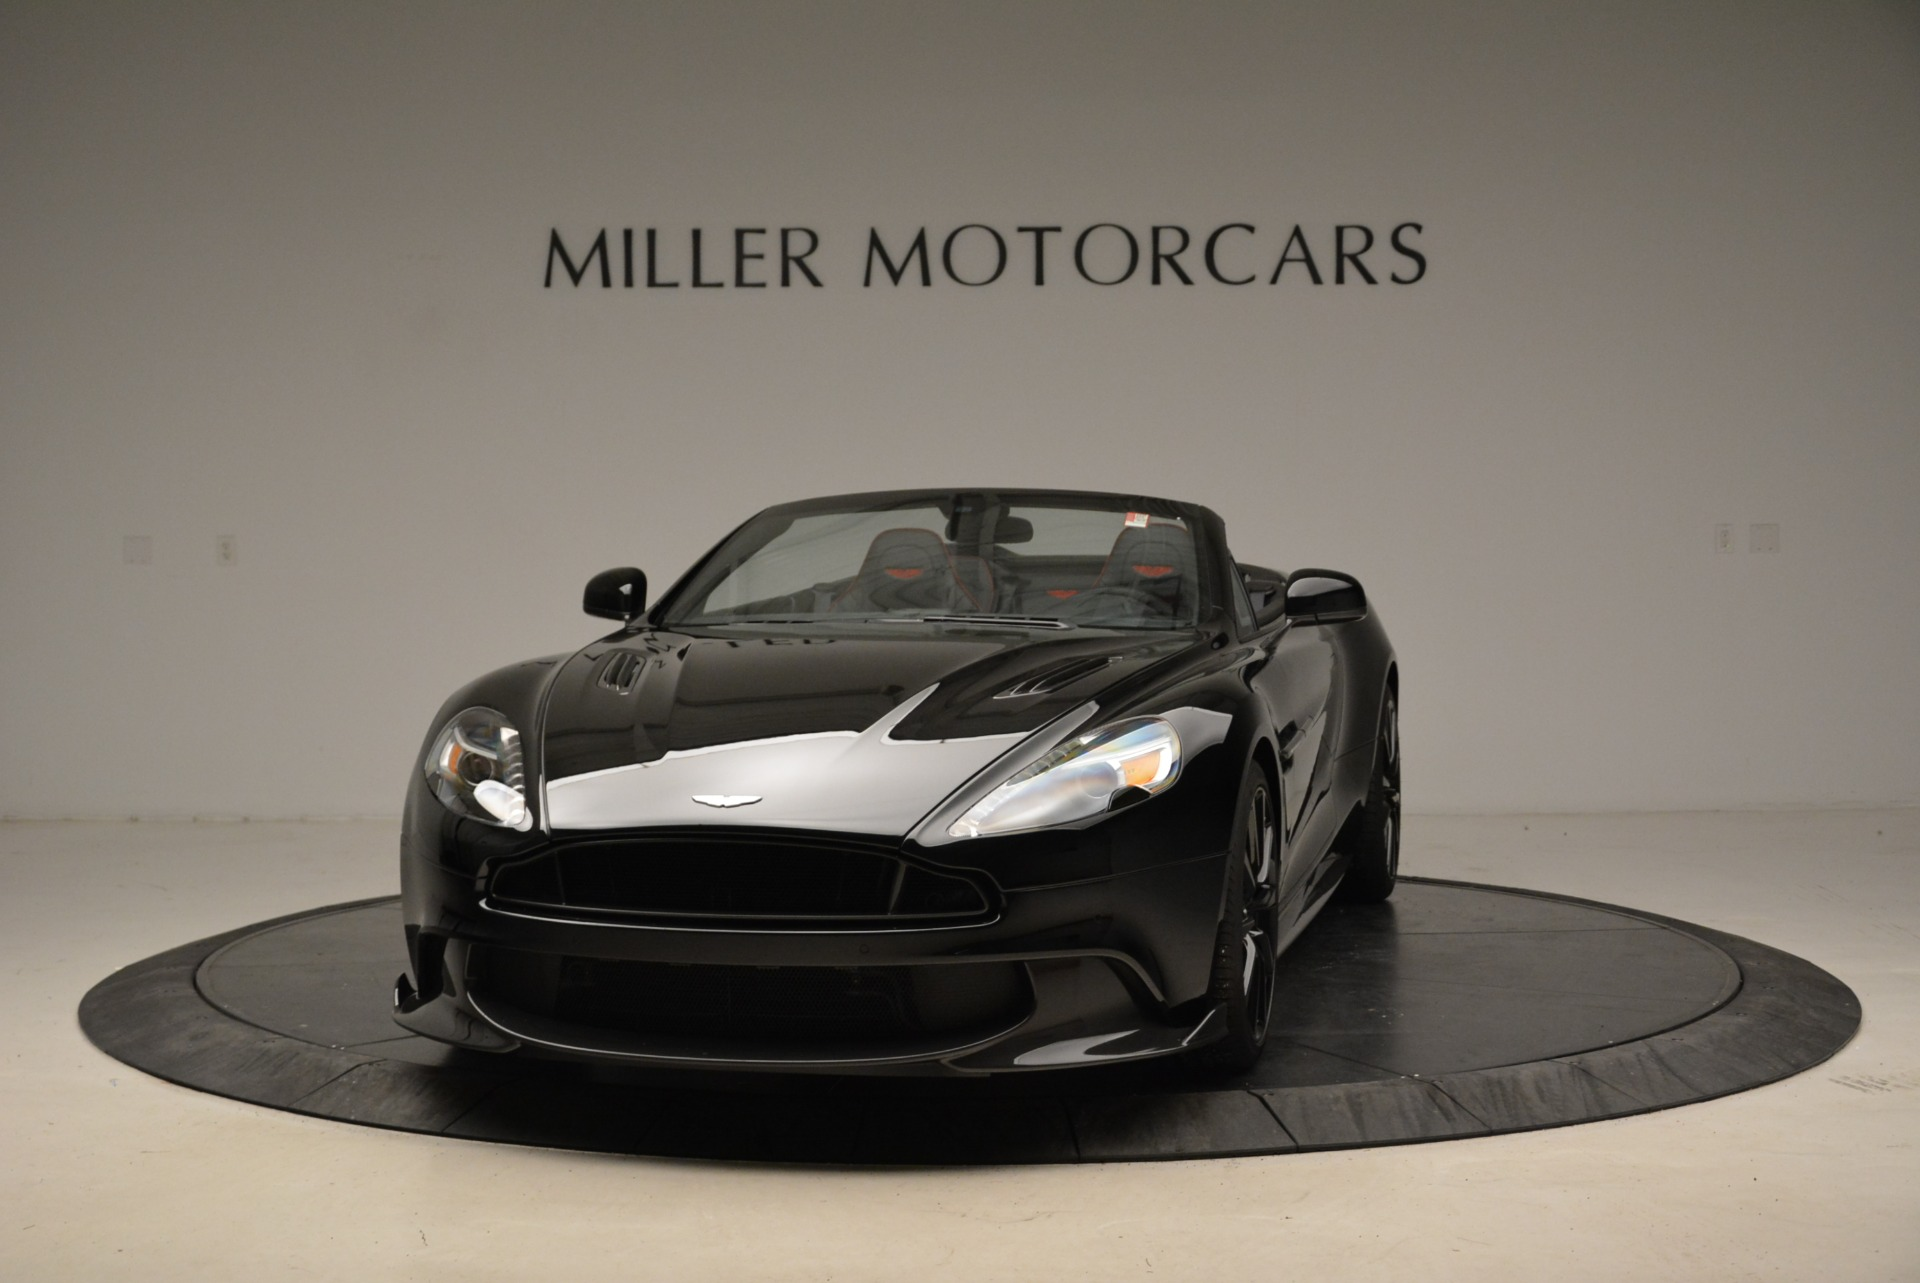 Used 2018 Aston Martin Vanquish S Convertible for sale Sold at Bugatti of Greenwich in Greenwich CT 06830 1